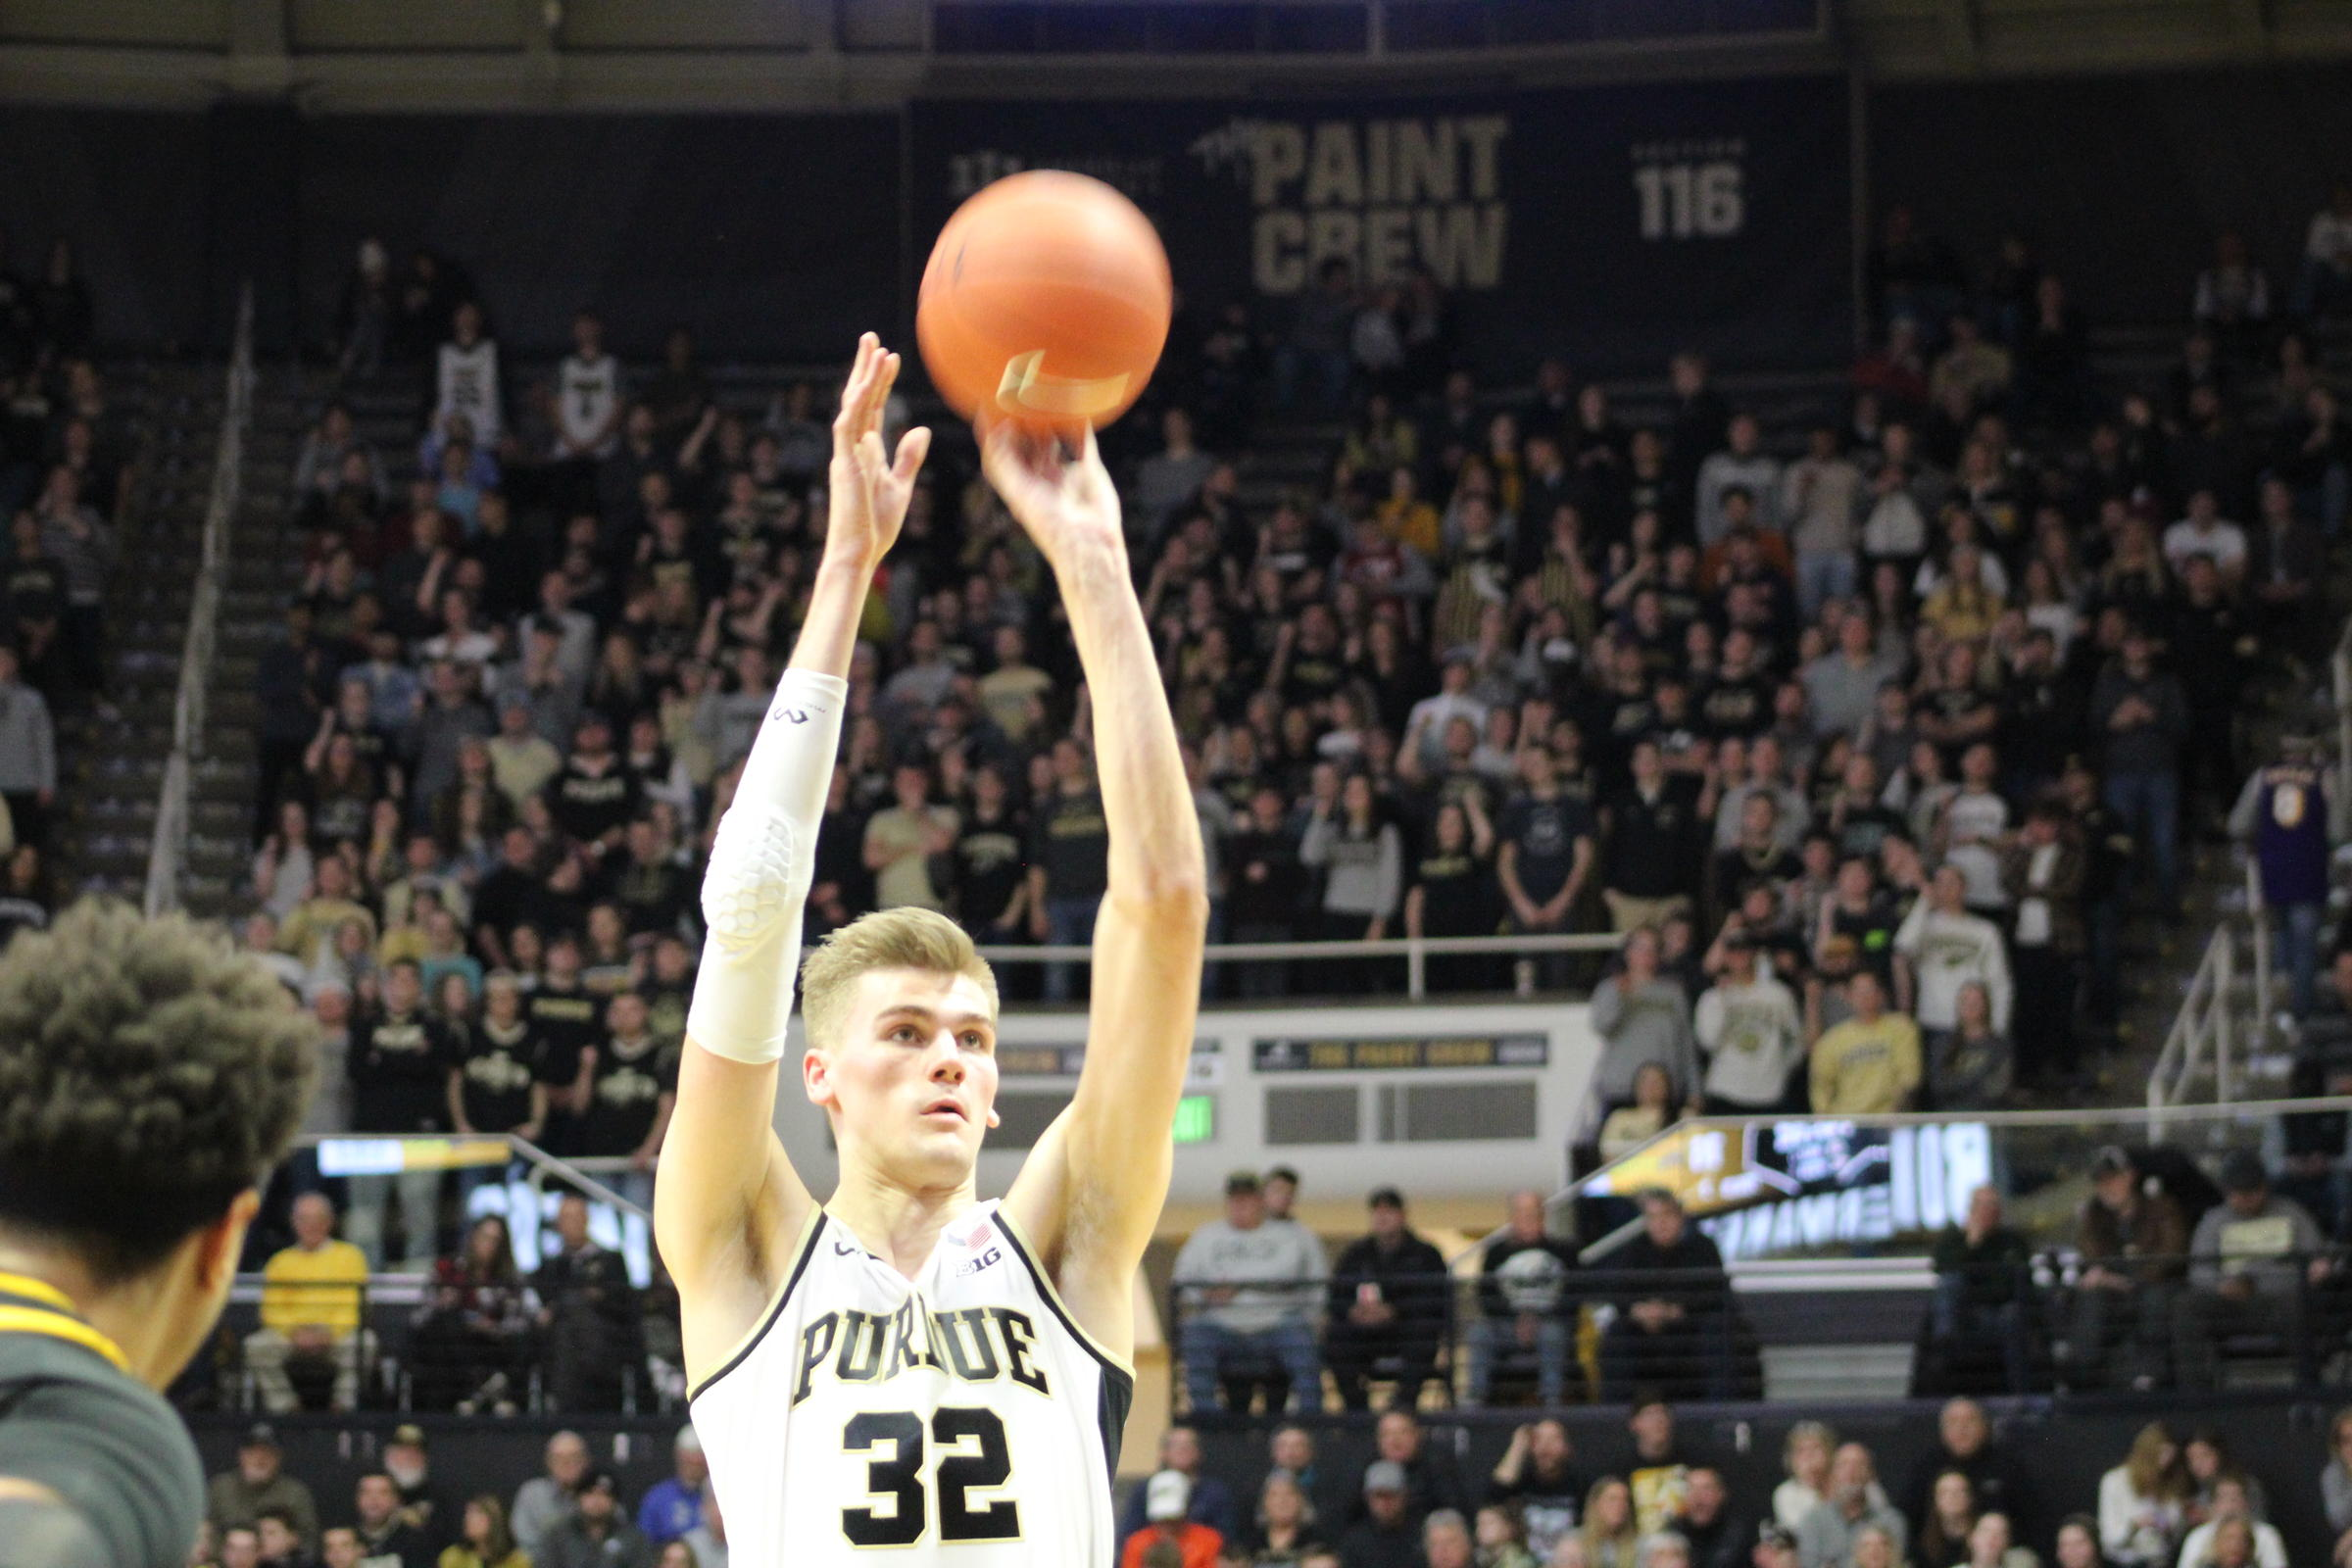 How to Watch Iowa vs Purdue Basketball Without Cable